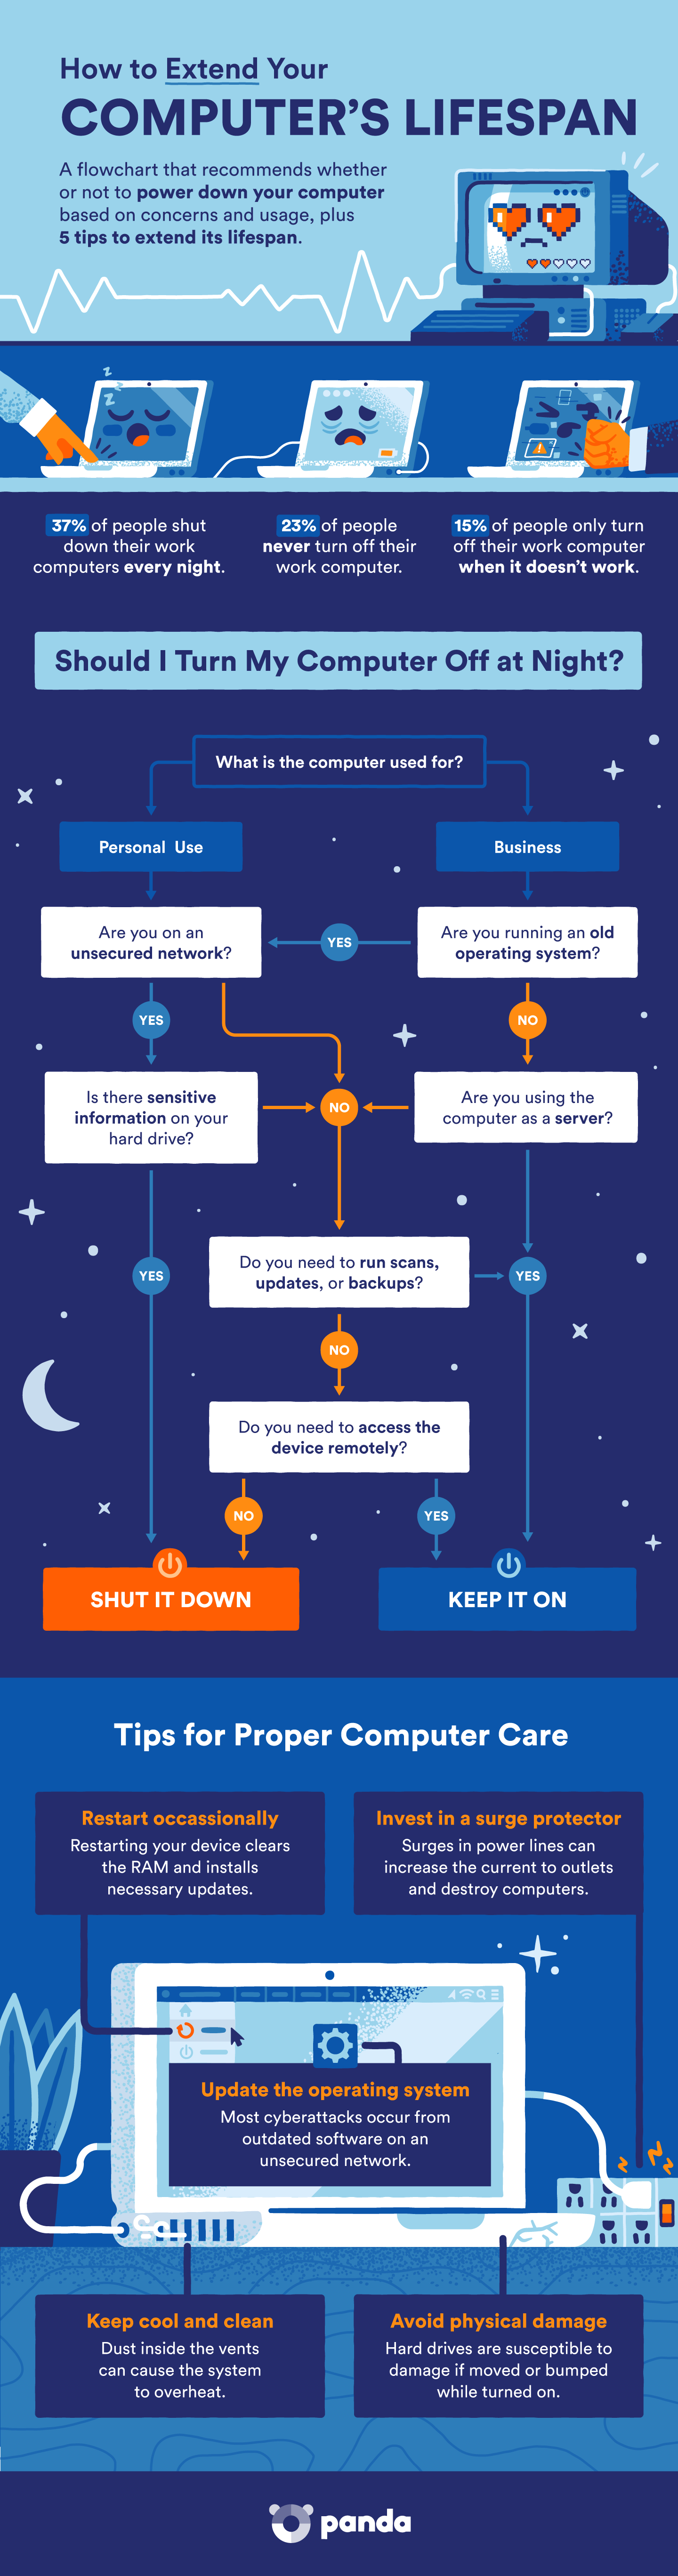 should-you-turn-off-your-computer-at-night-infographic